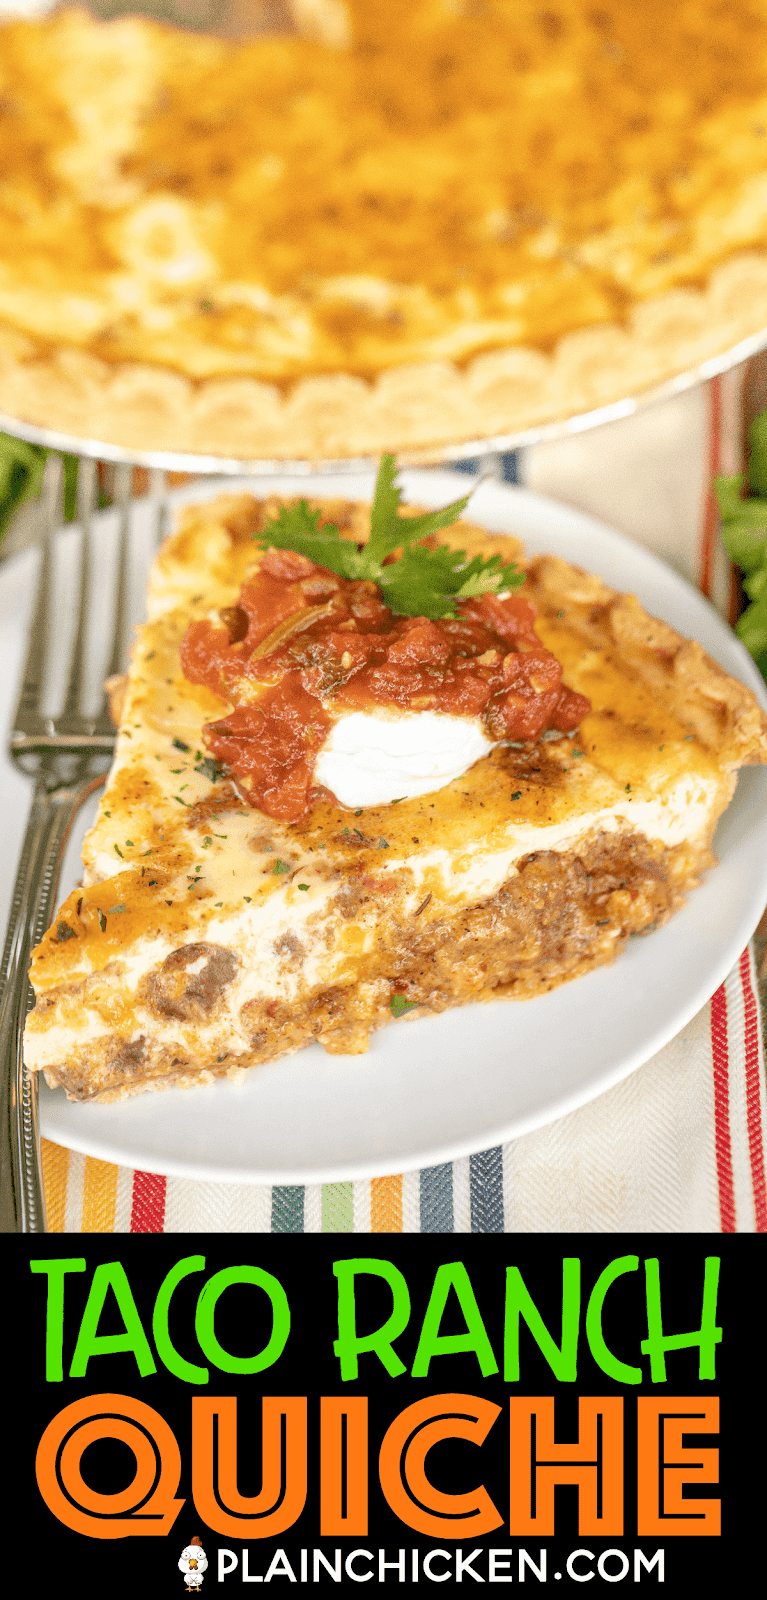 slice of taco ranch quiche on a plate